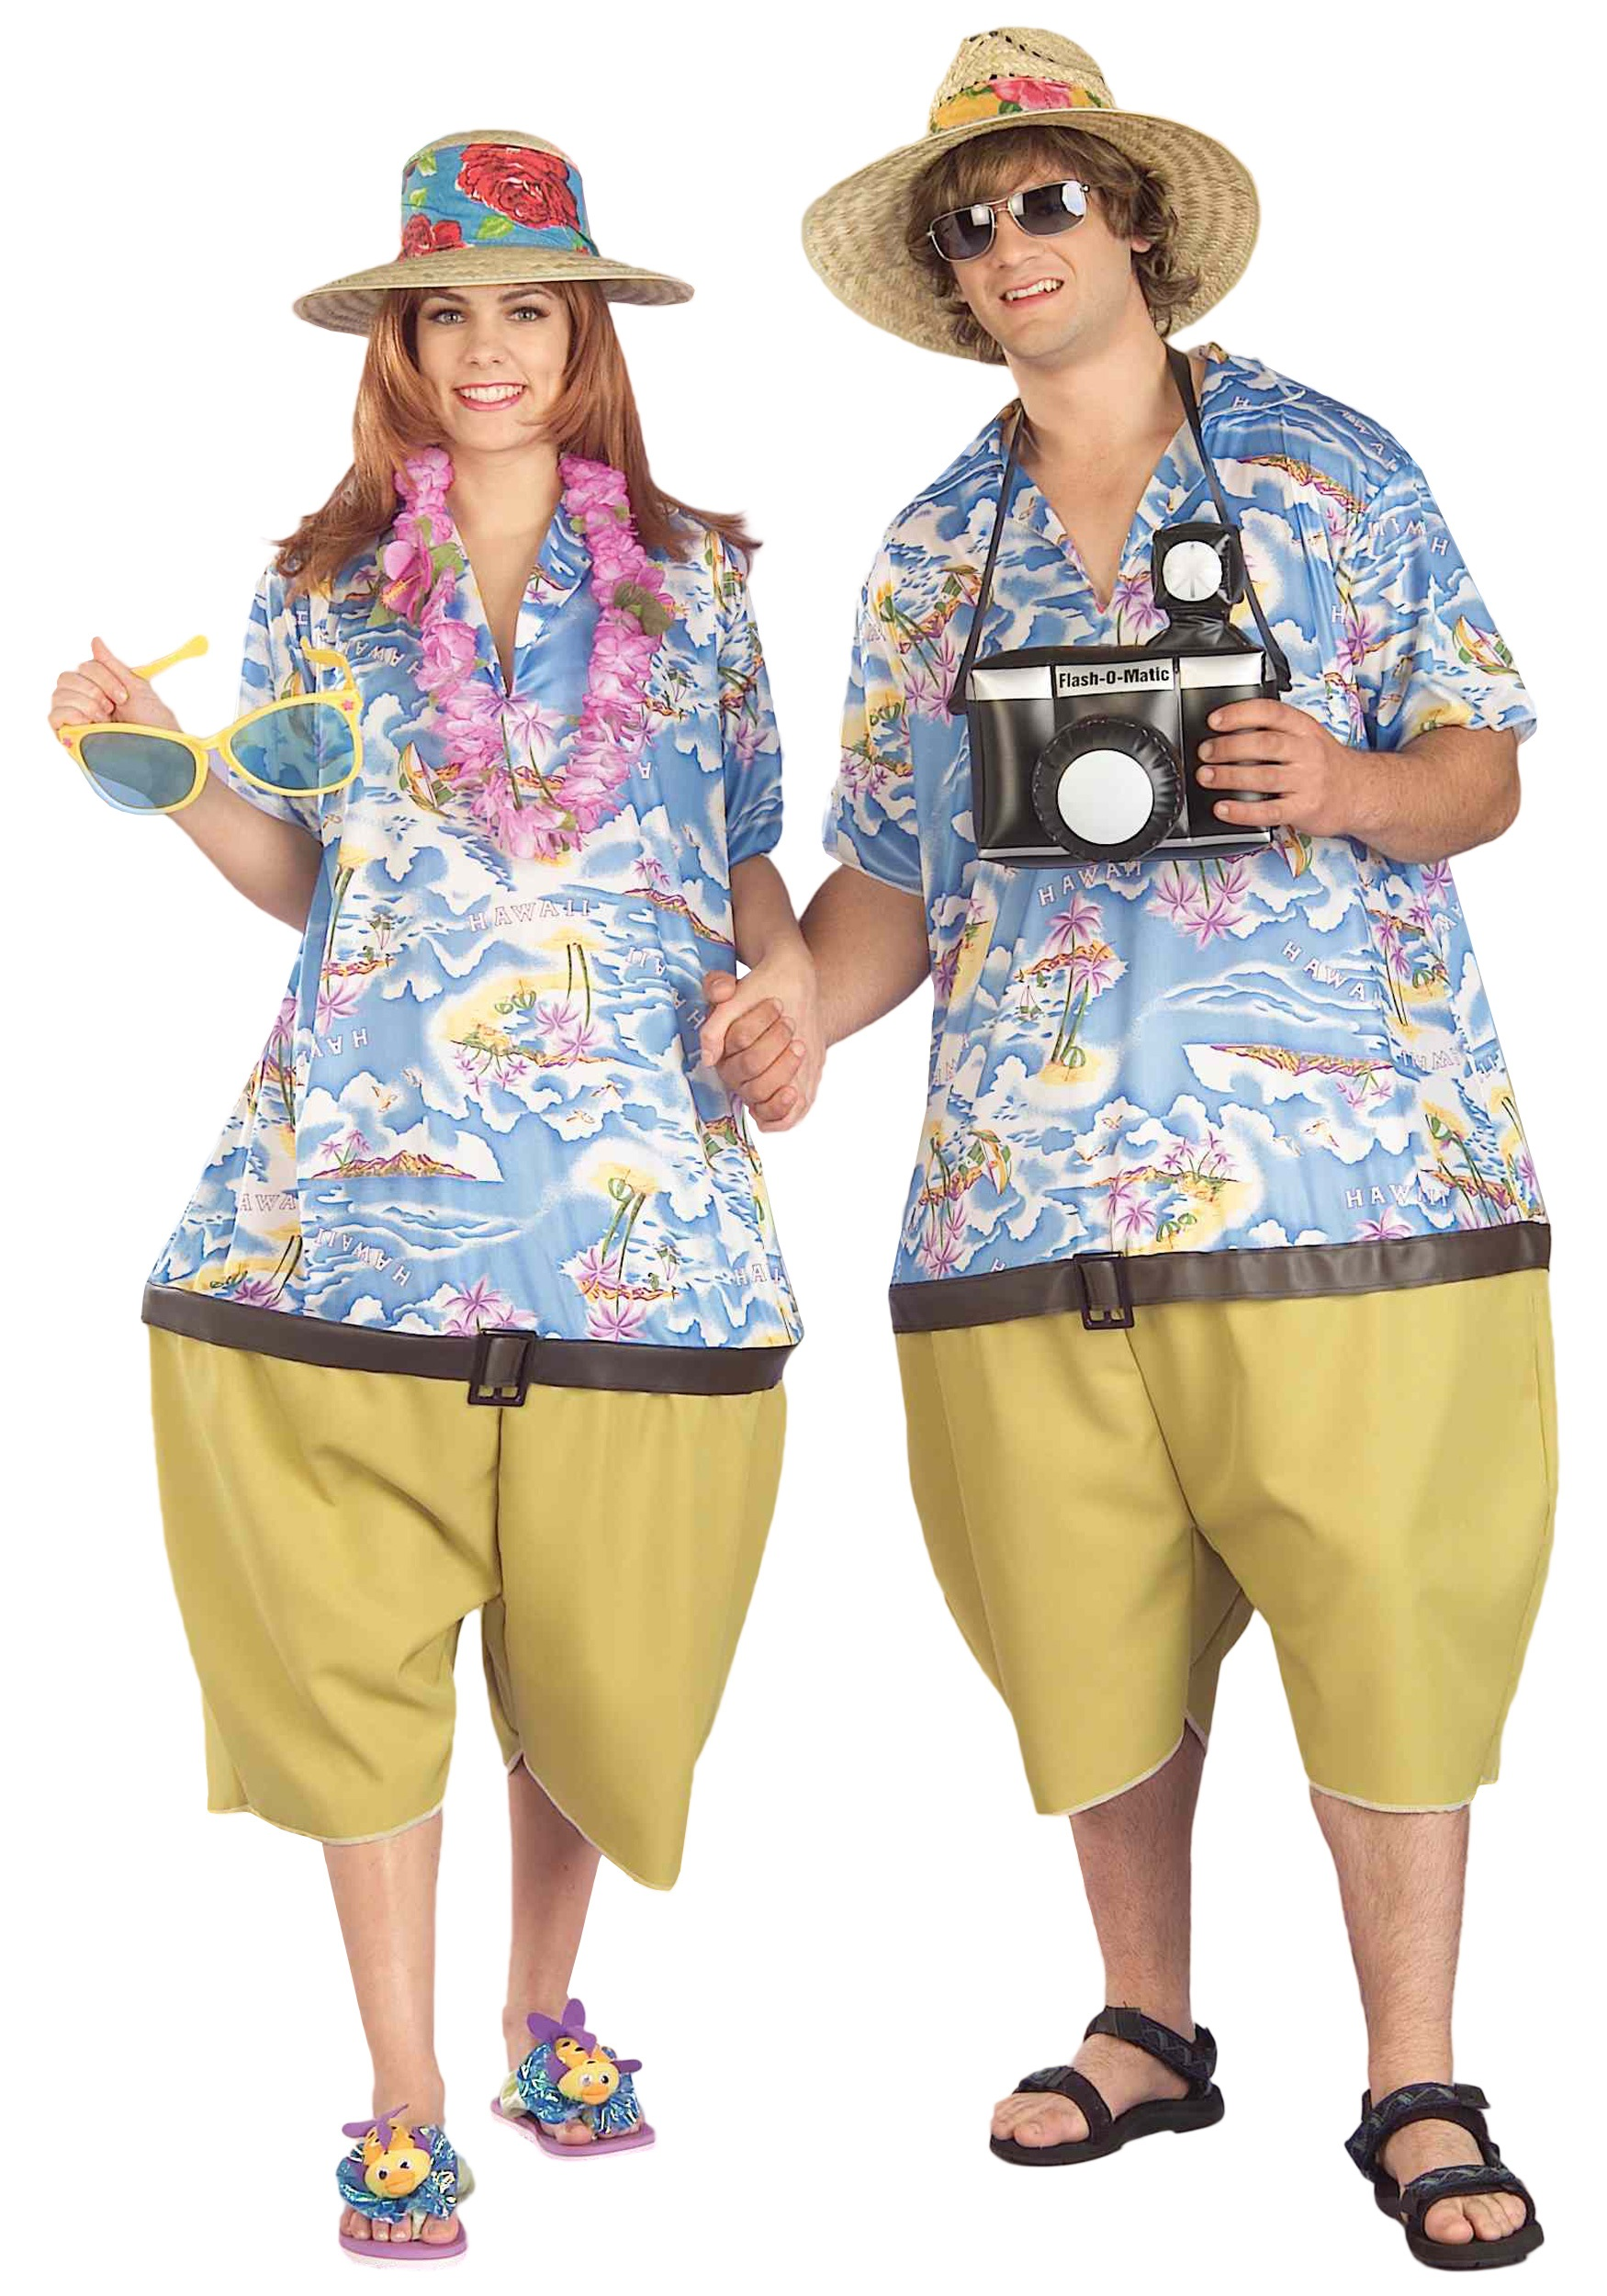 e797a6c55 adult-tropical-tourist-costume.jpg